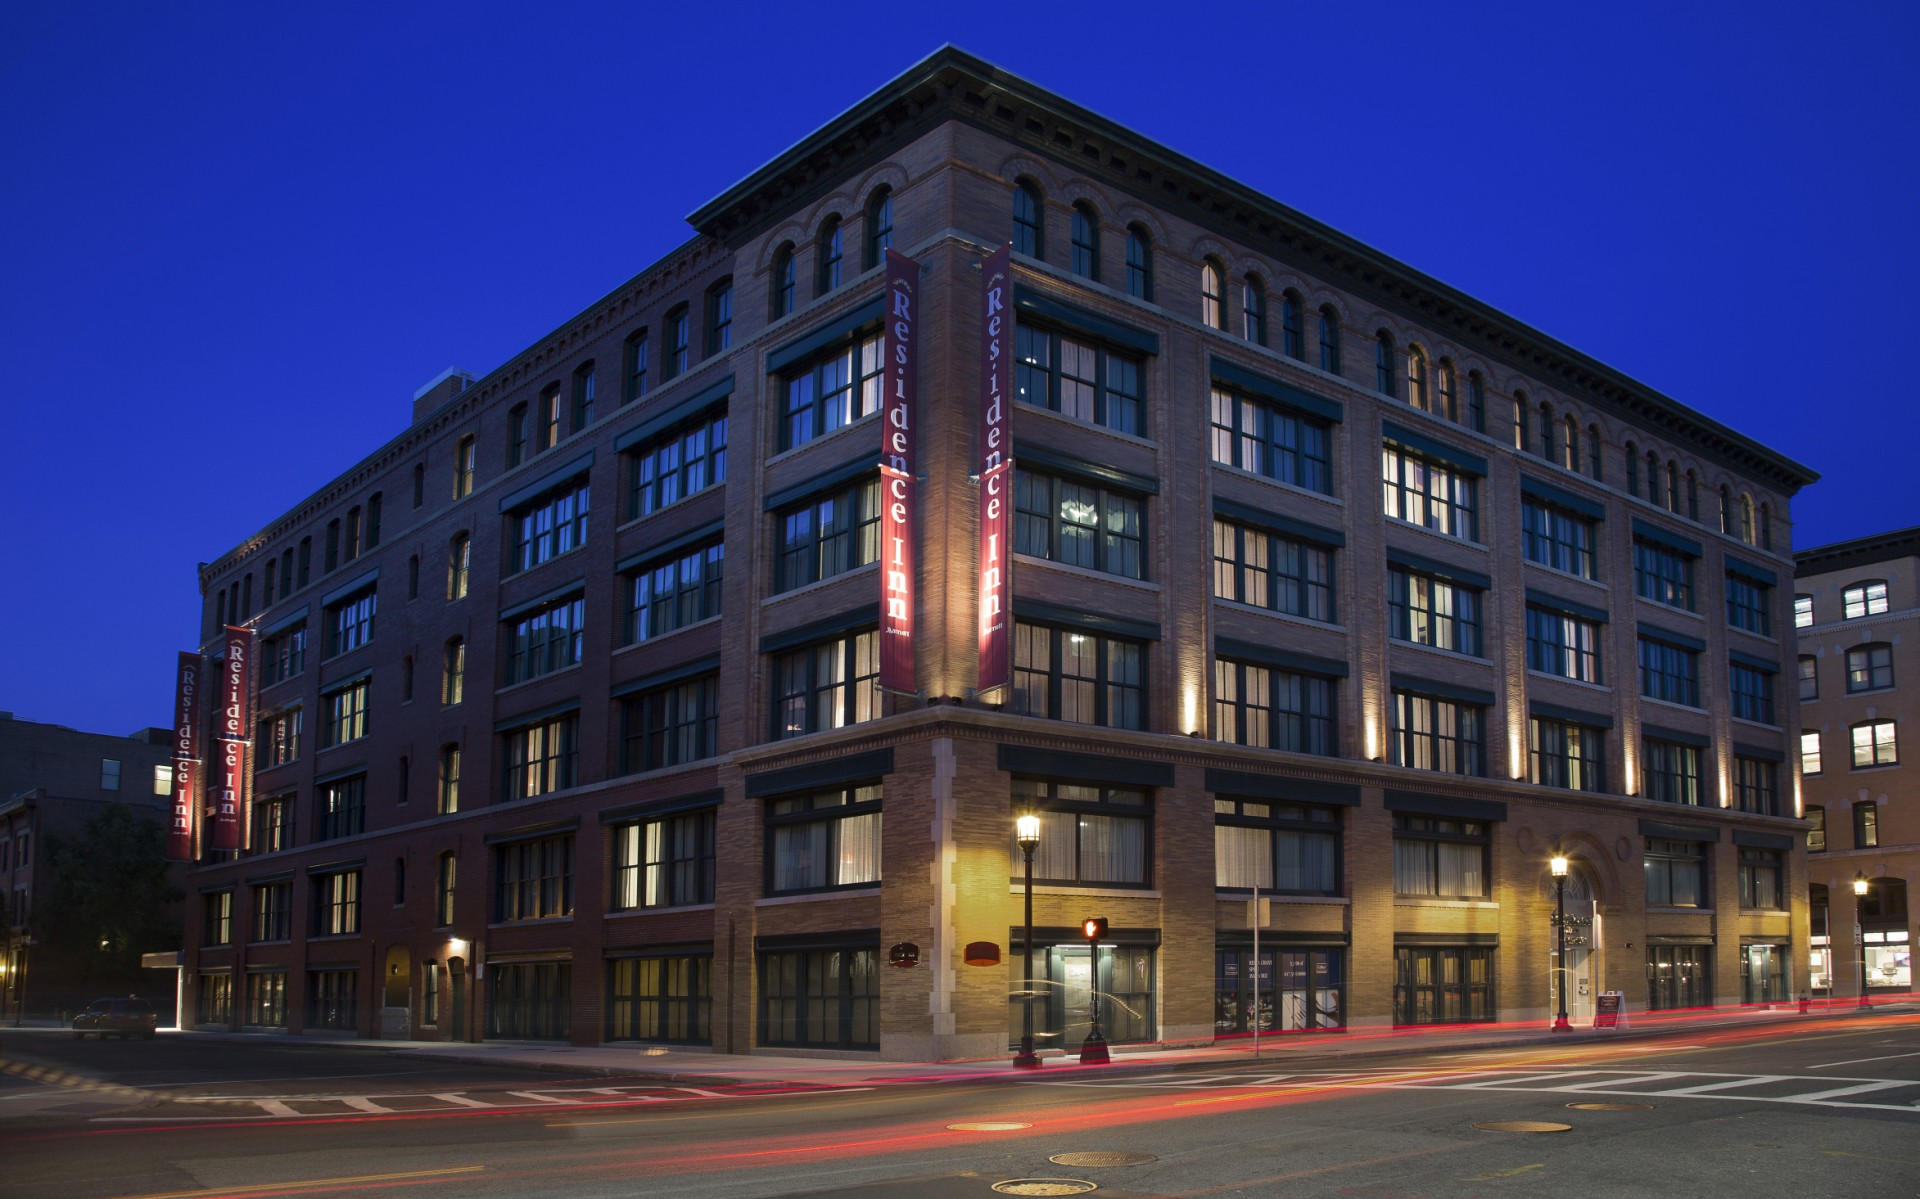 Recently renovated, the 112-year-old building housing the Marriott Residence Inn has been given a new modern lighting design by D. Schweppe.